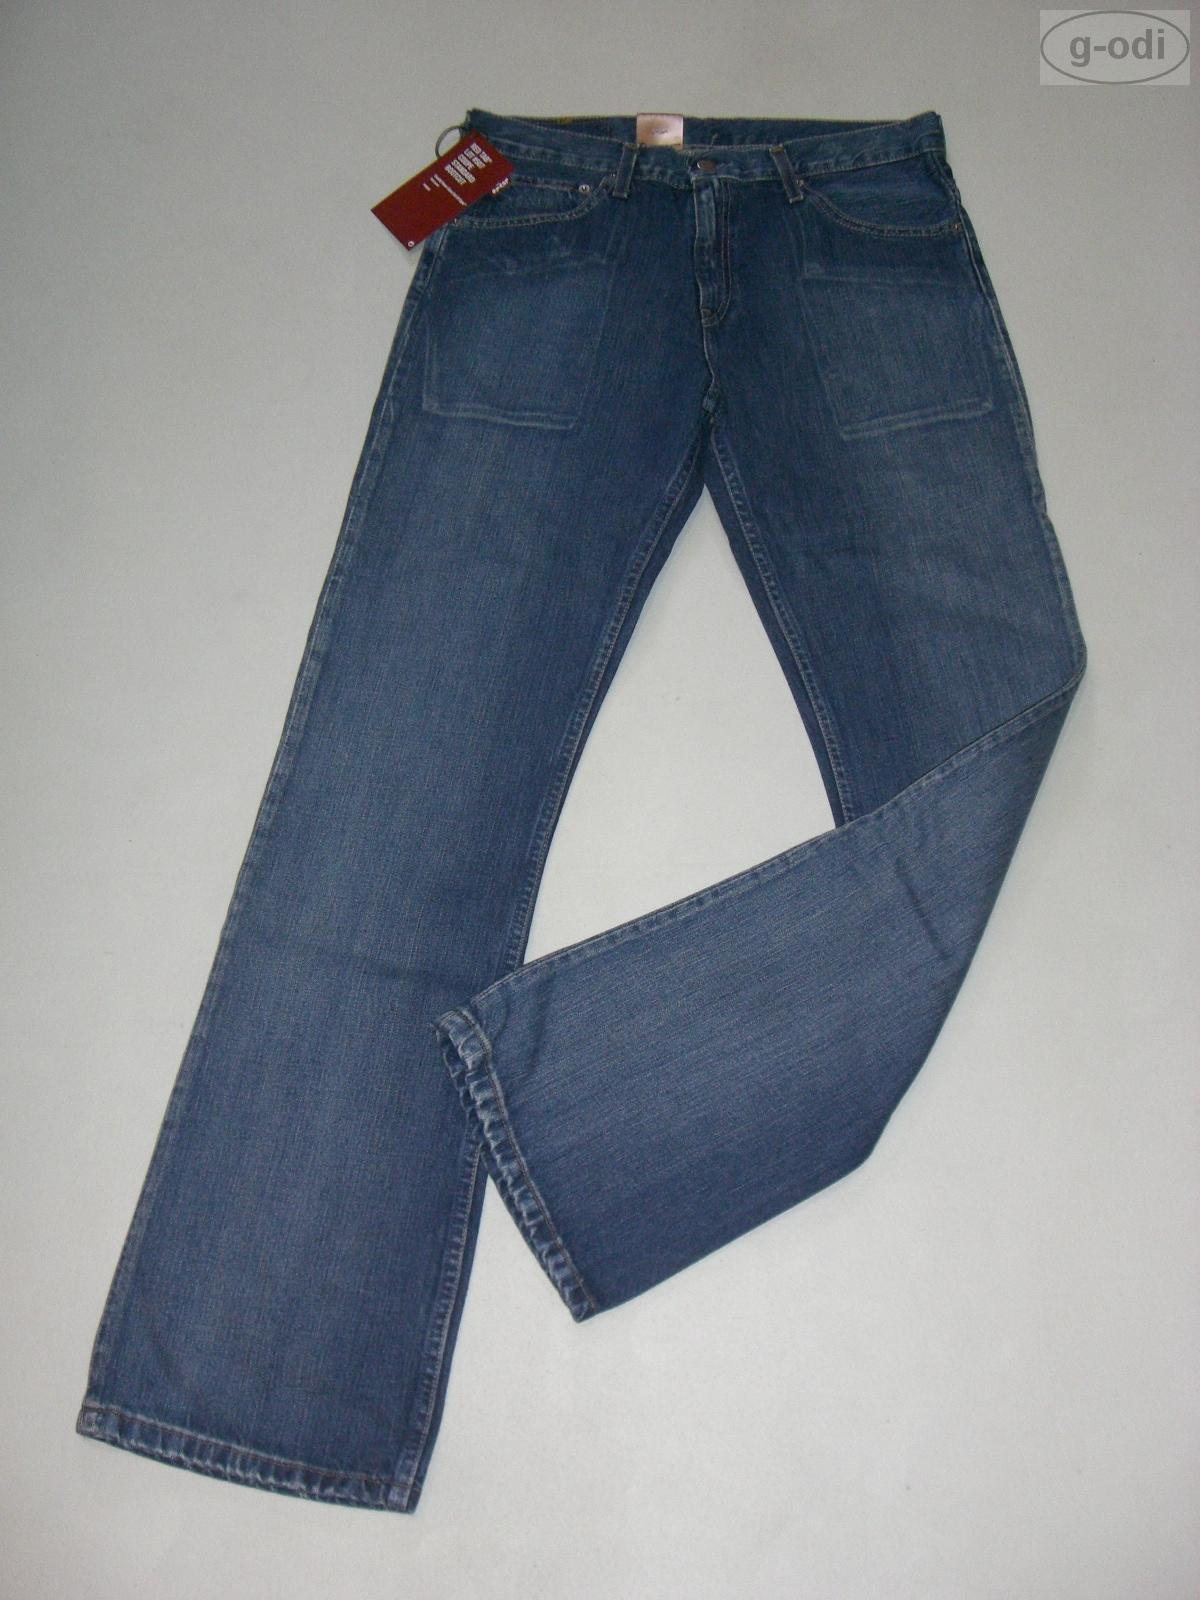 Product Description to move, the Slim Fit Stretch Jeans are a classic since right now.